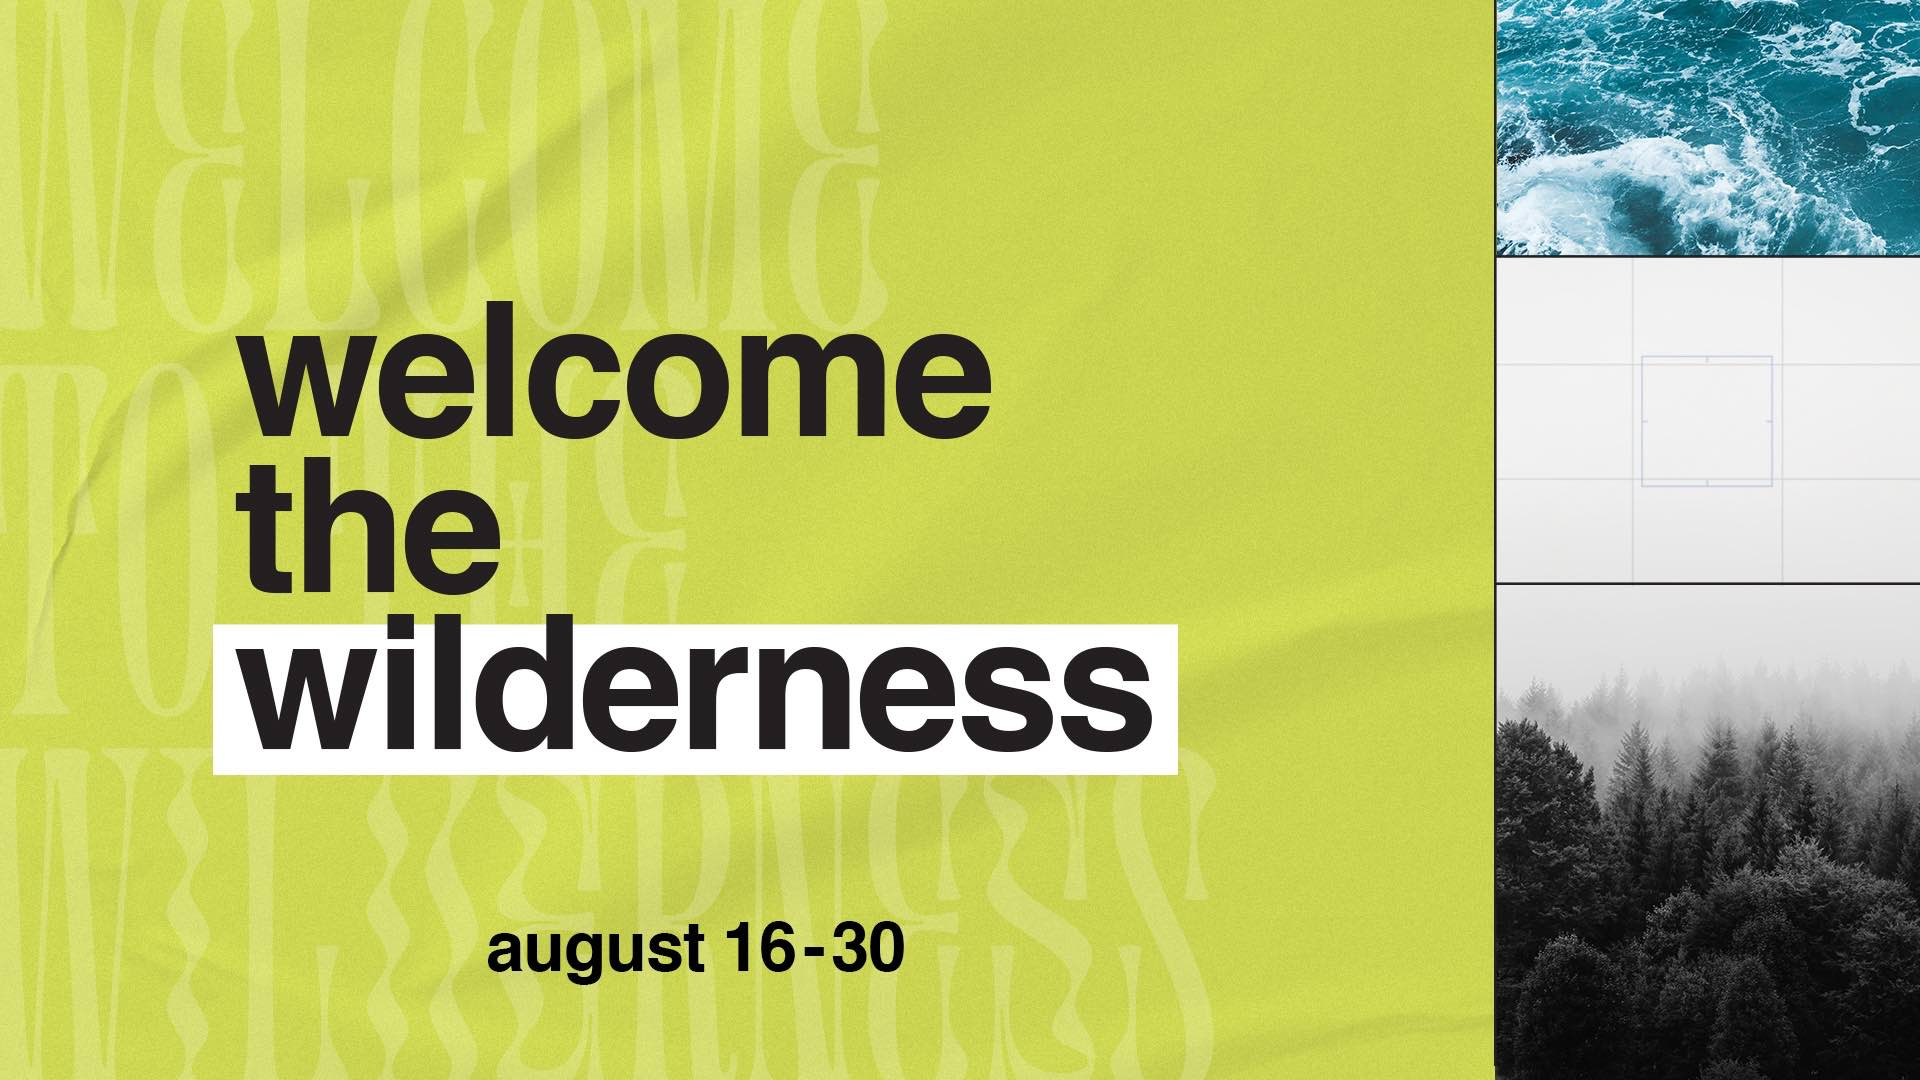 Welcome the Wilderness